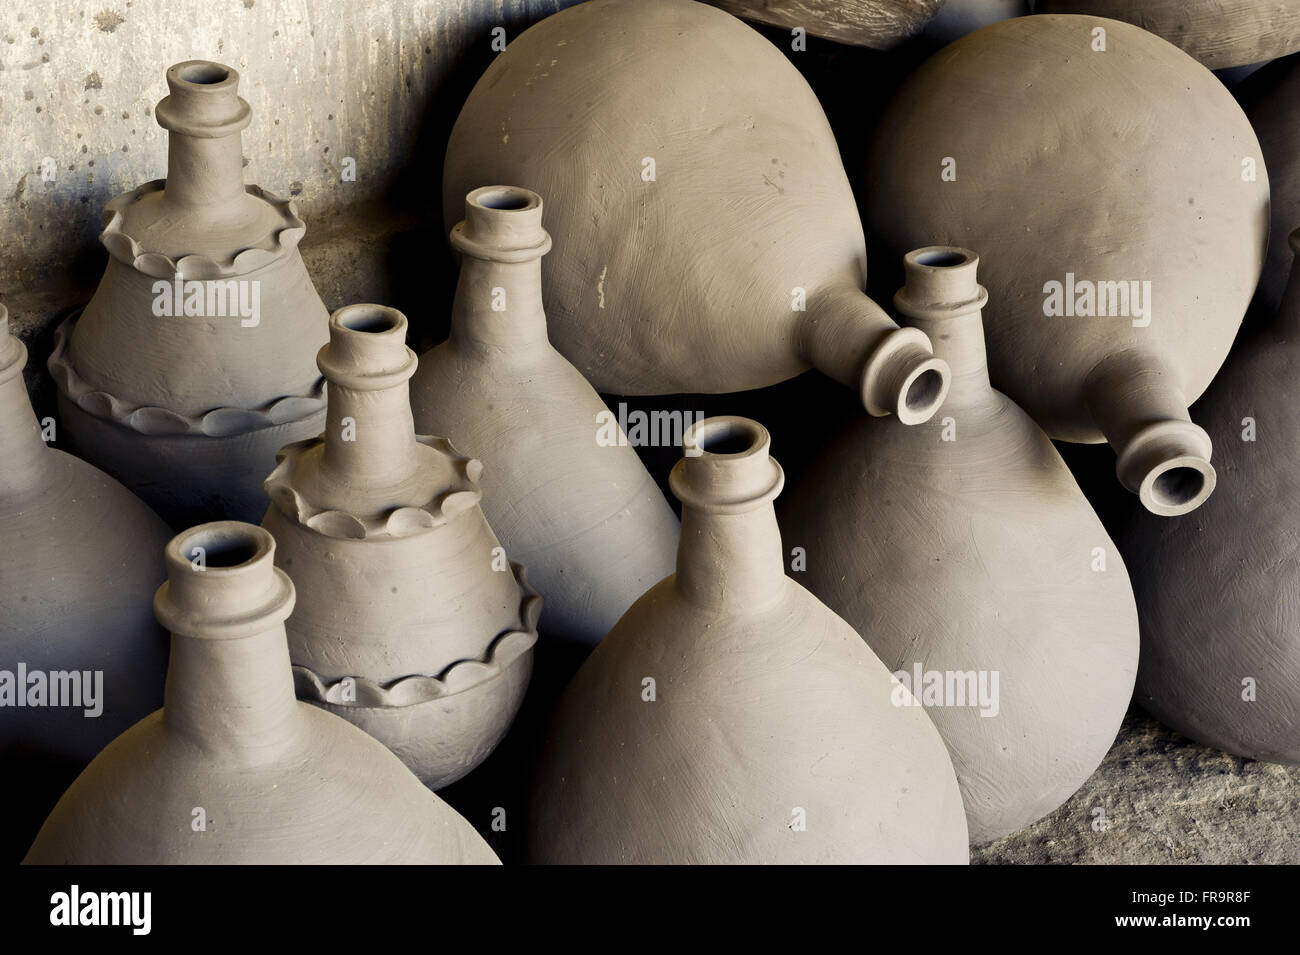 Earthenware crock made by Dona Ferreira Andrelina Flowers - Stock Image